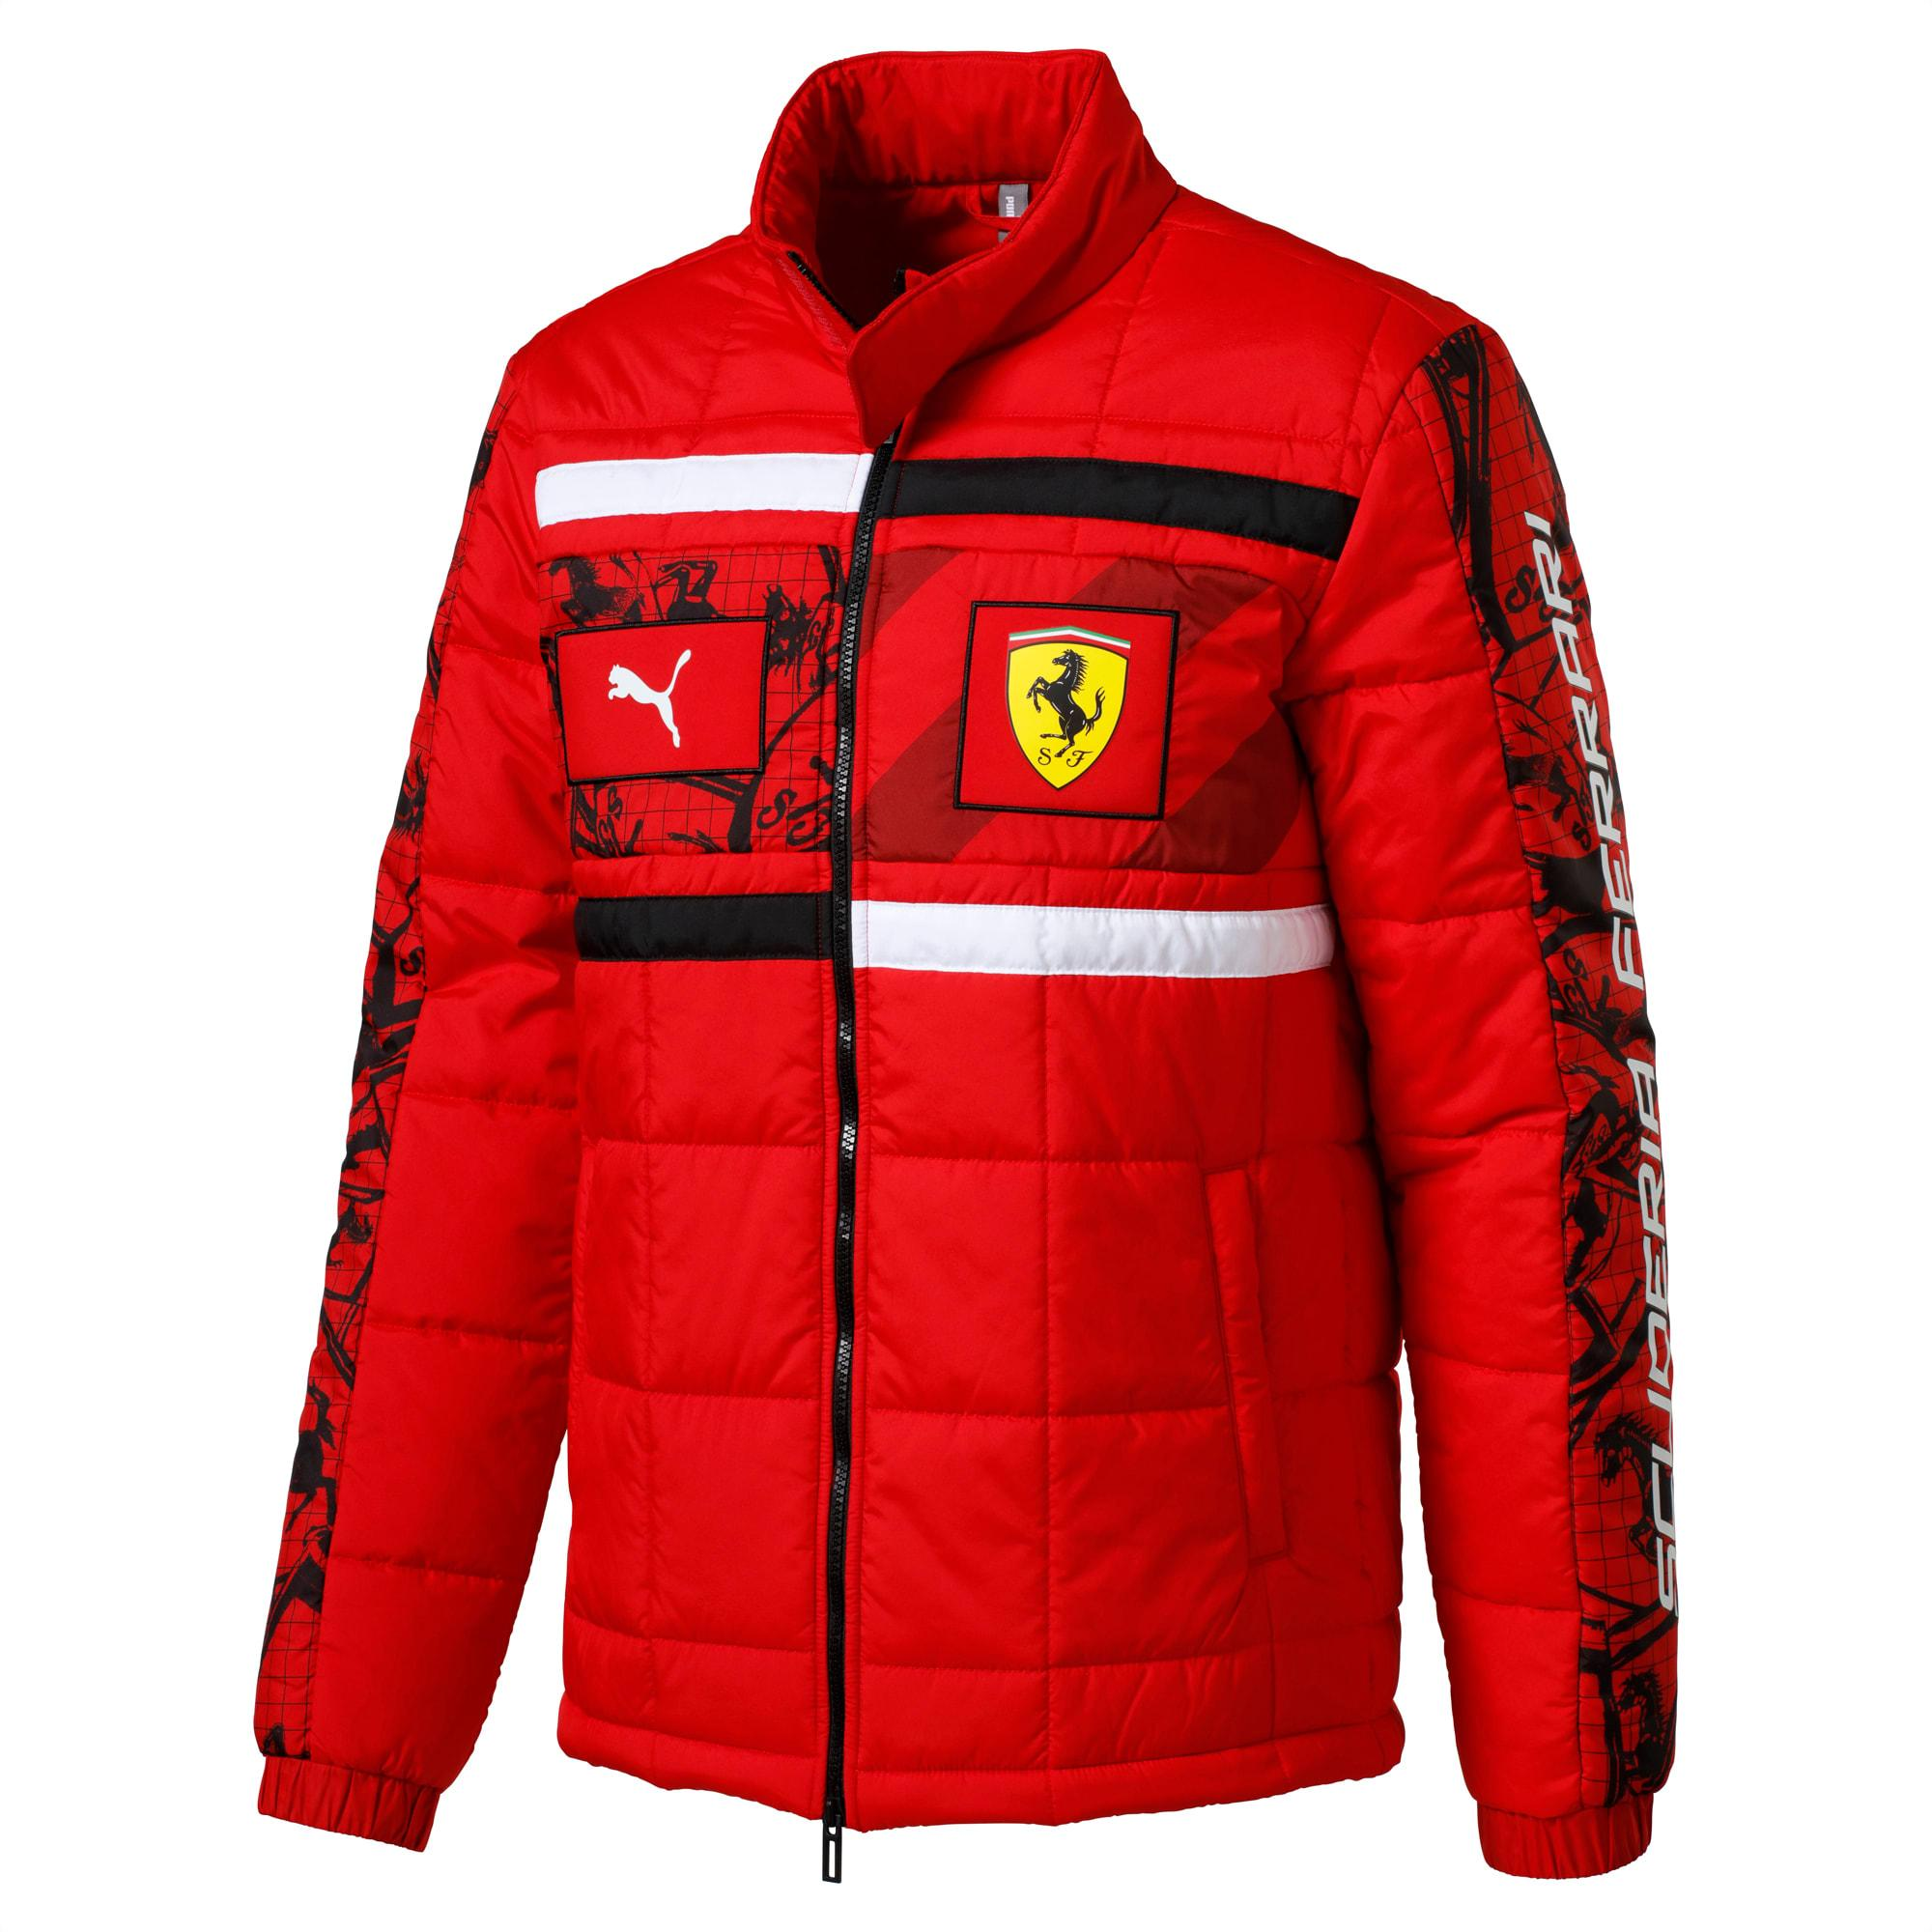 Puma Synthetic Scuderia Ferrari Men S Racing Jacket In Red For Men Lyst